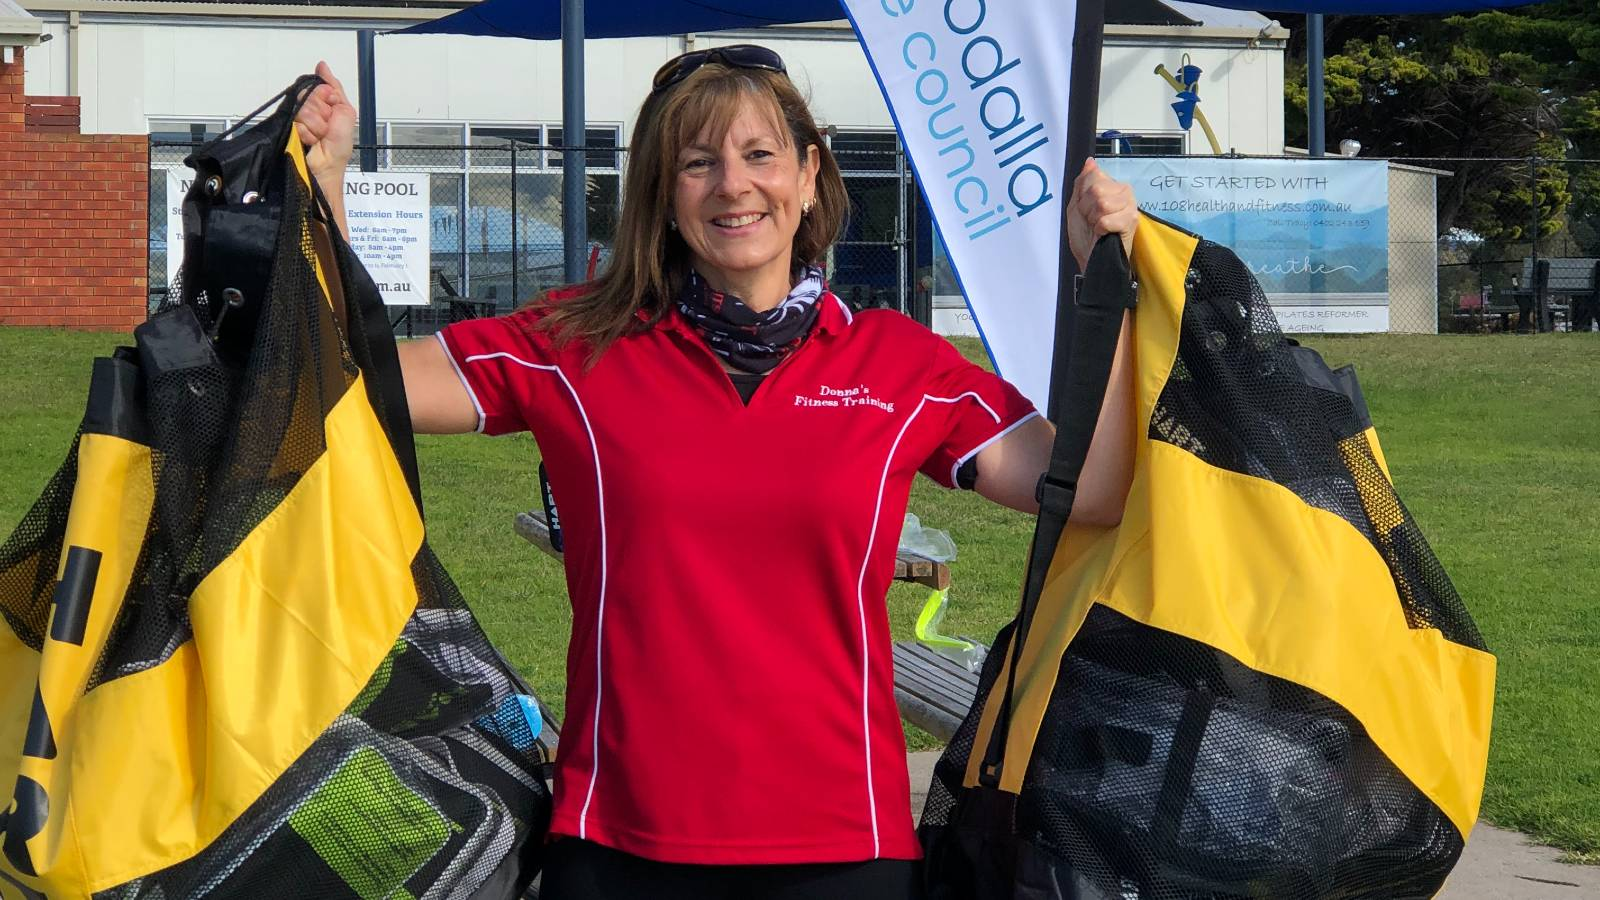 Donna McLean ready to teach free fitness classes on Narooma foreshore